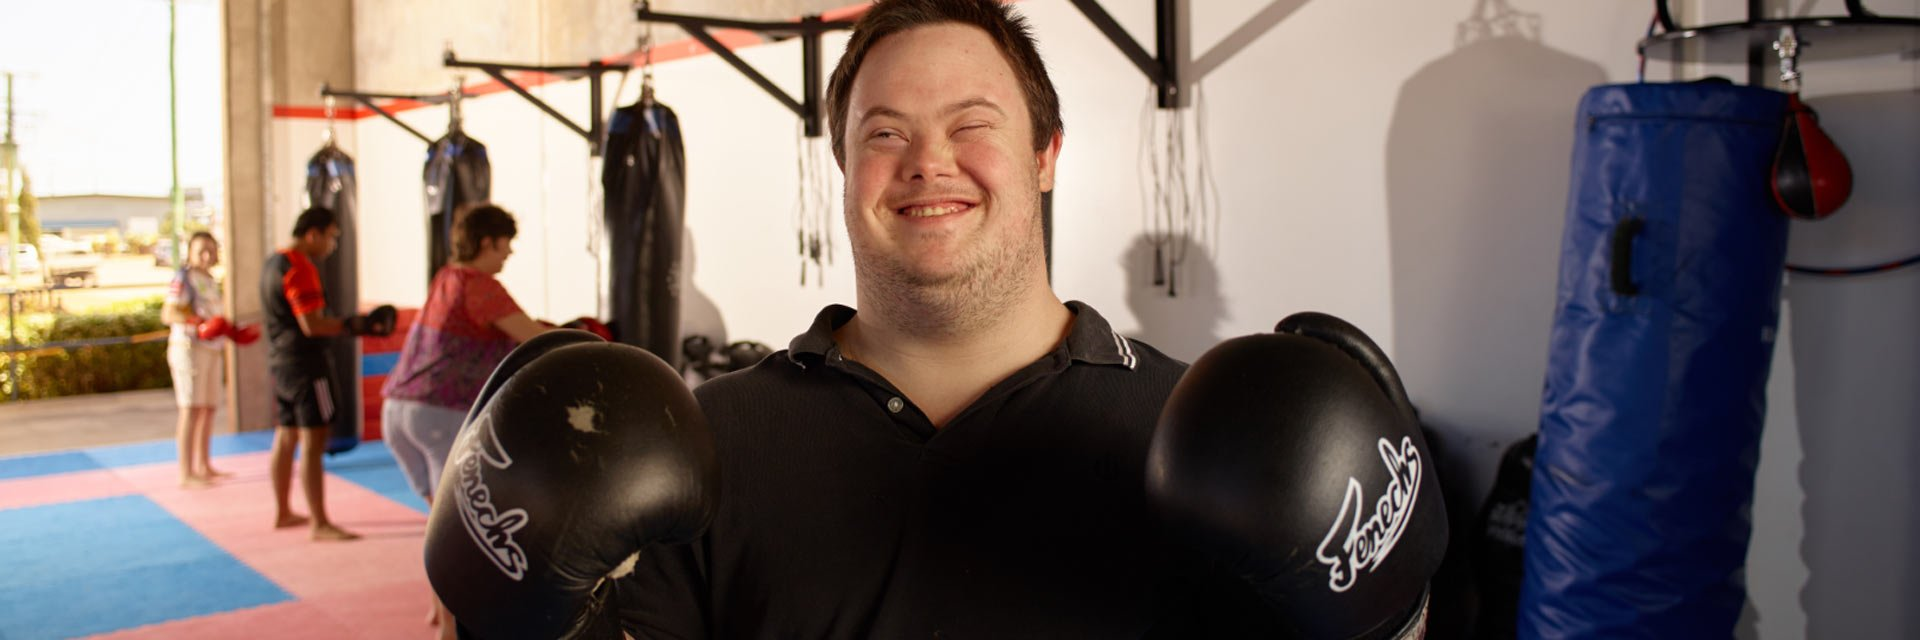 A man with down syndrome wearing boxing gloves